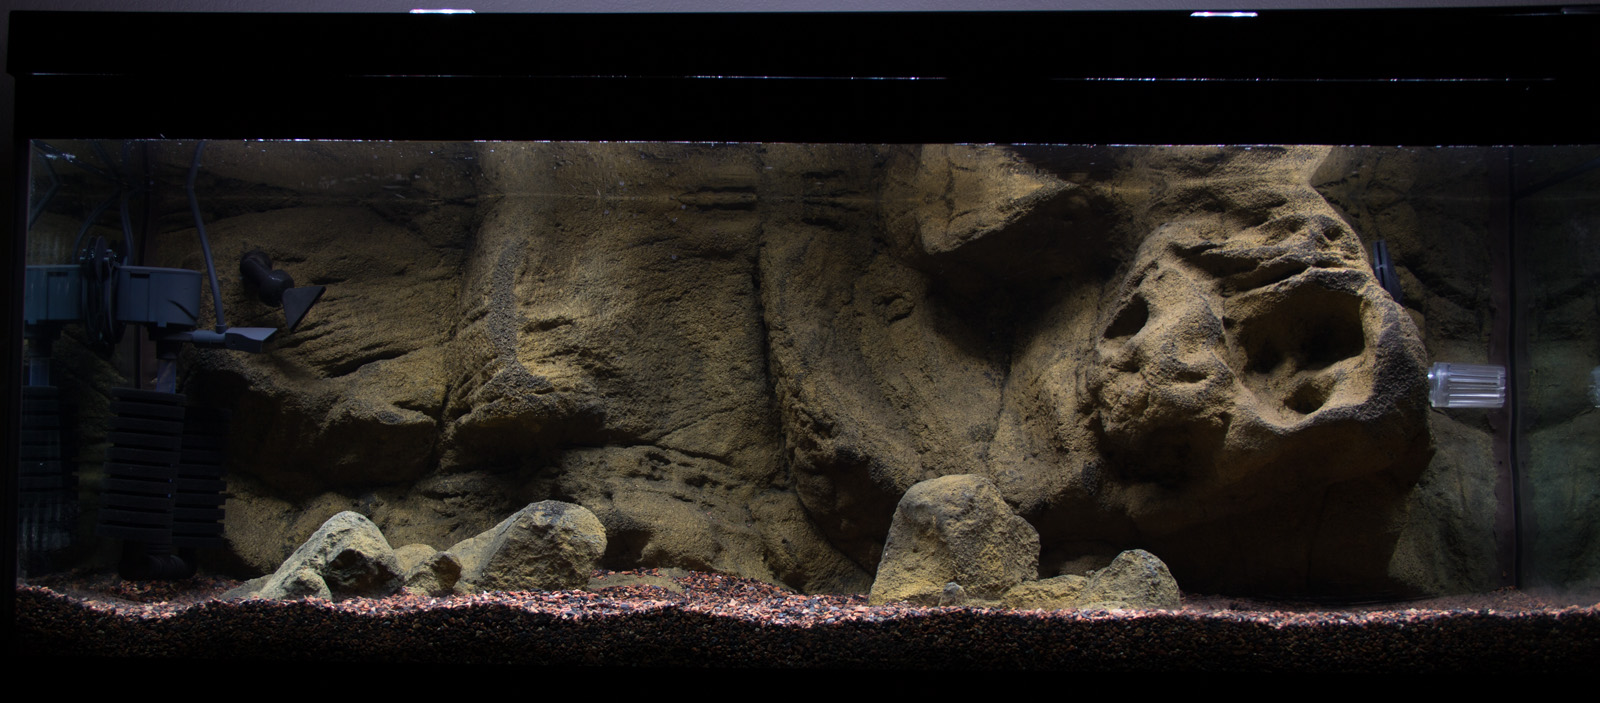 new 75g with universal